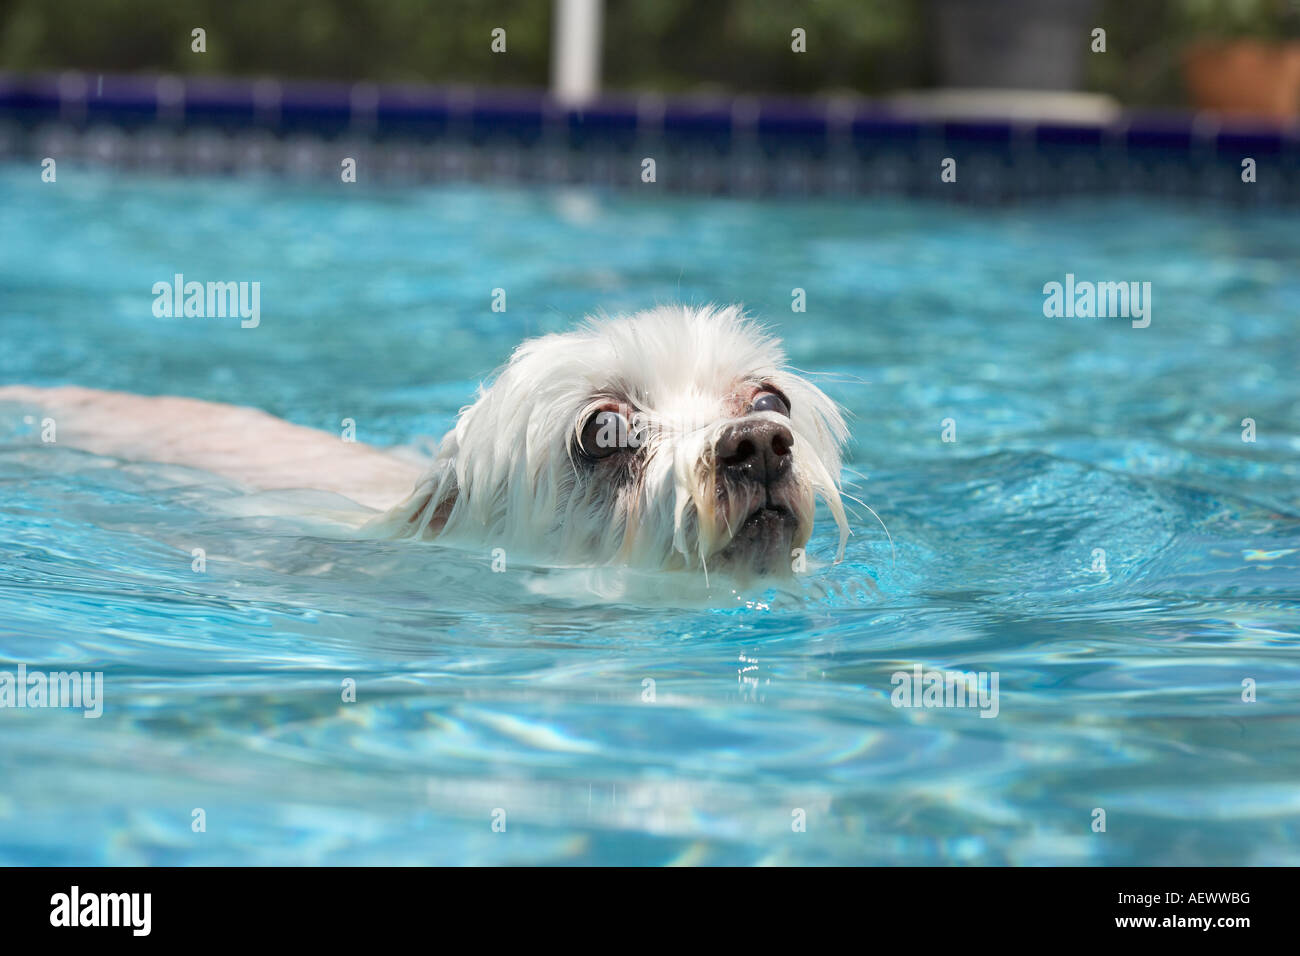 Maltese Dog Swimming In Pool Stock Photo Royalty Free Image 13766163 Alamy